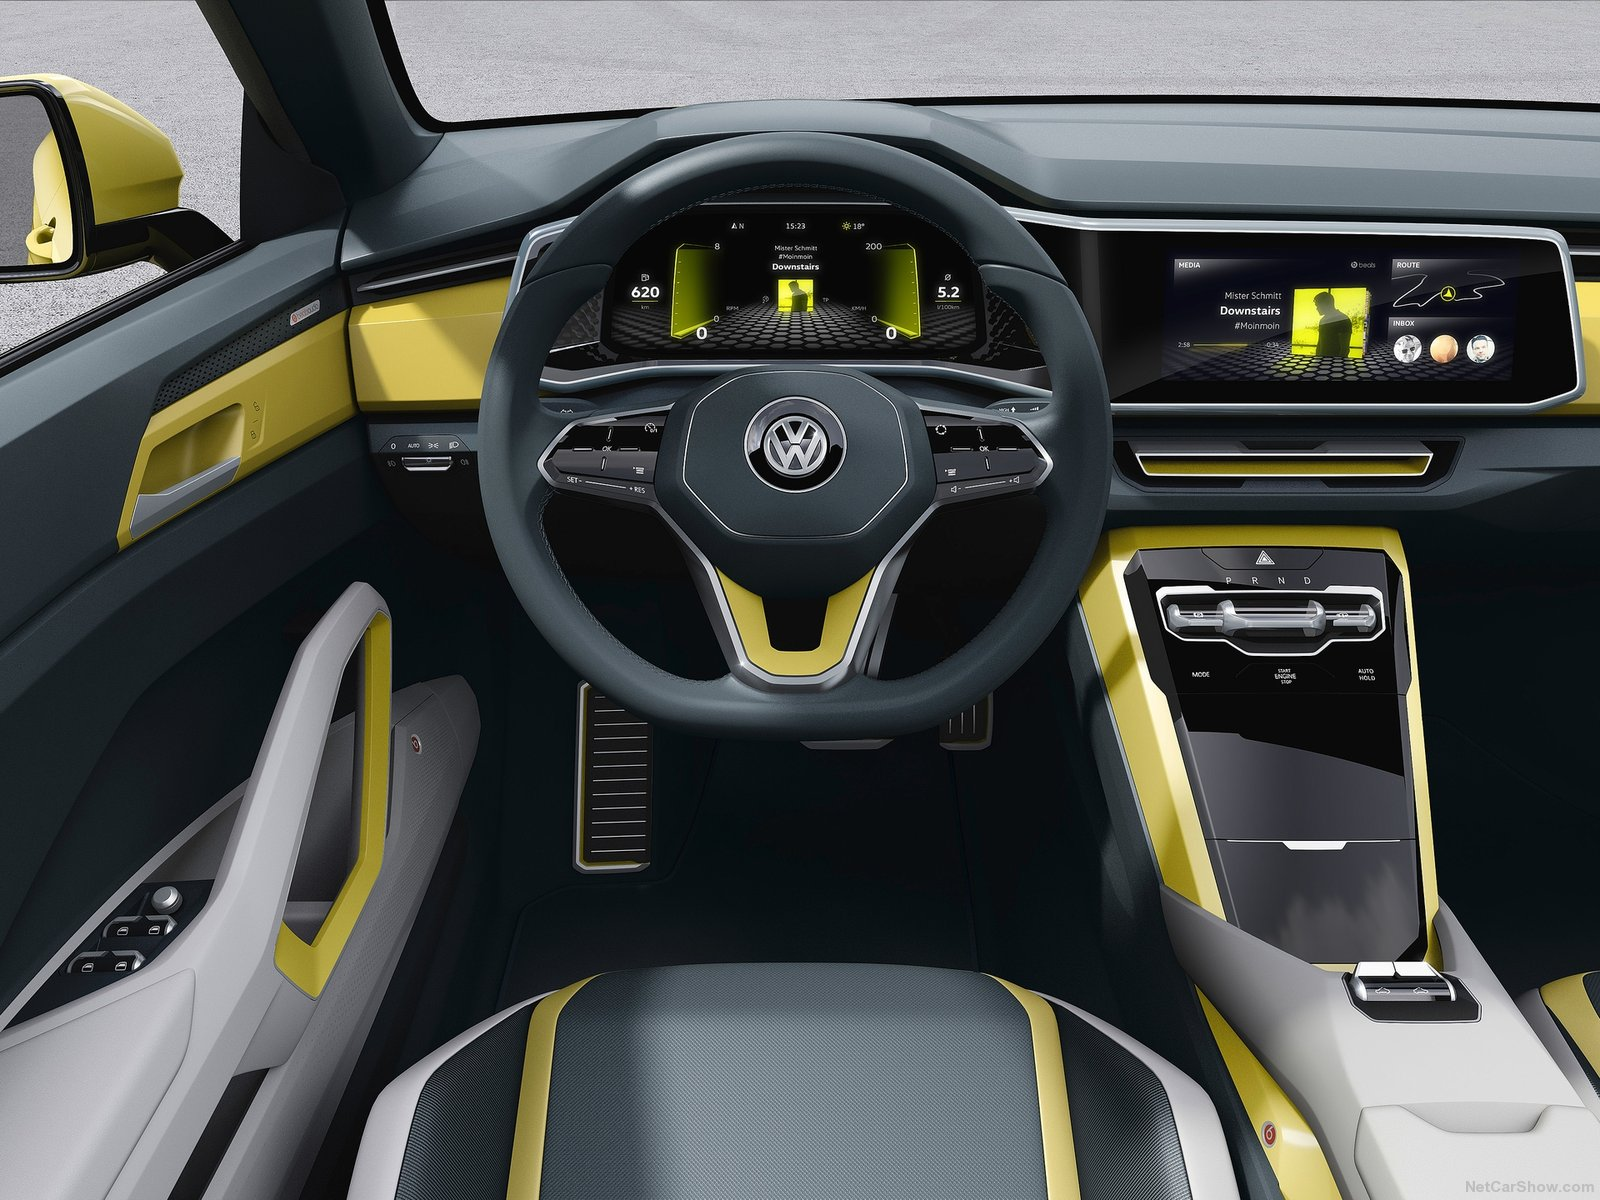 vw t-cross breeze hmi cluster ui дизайн